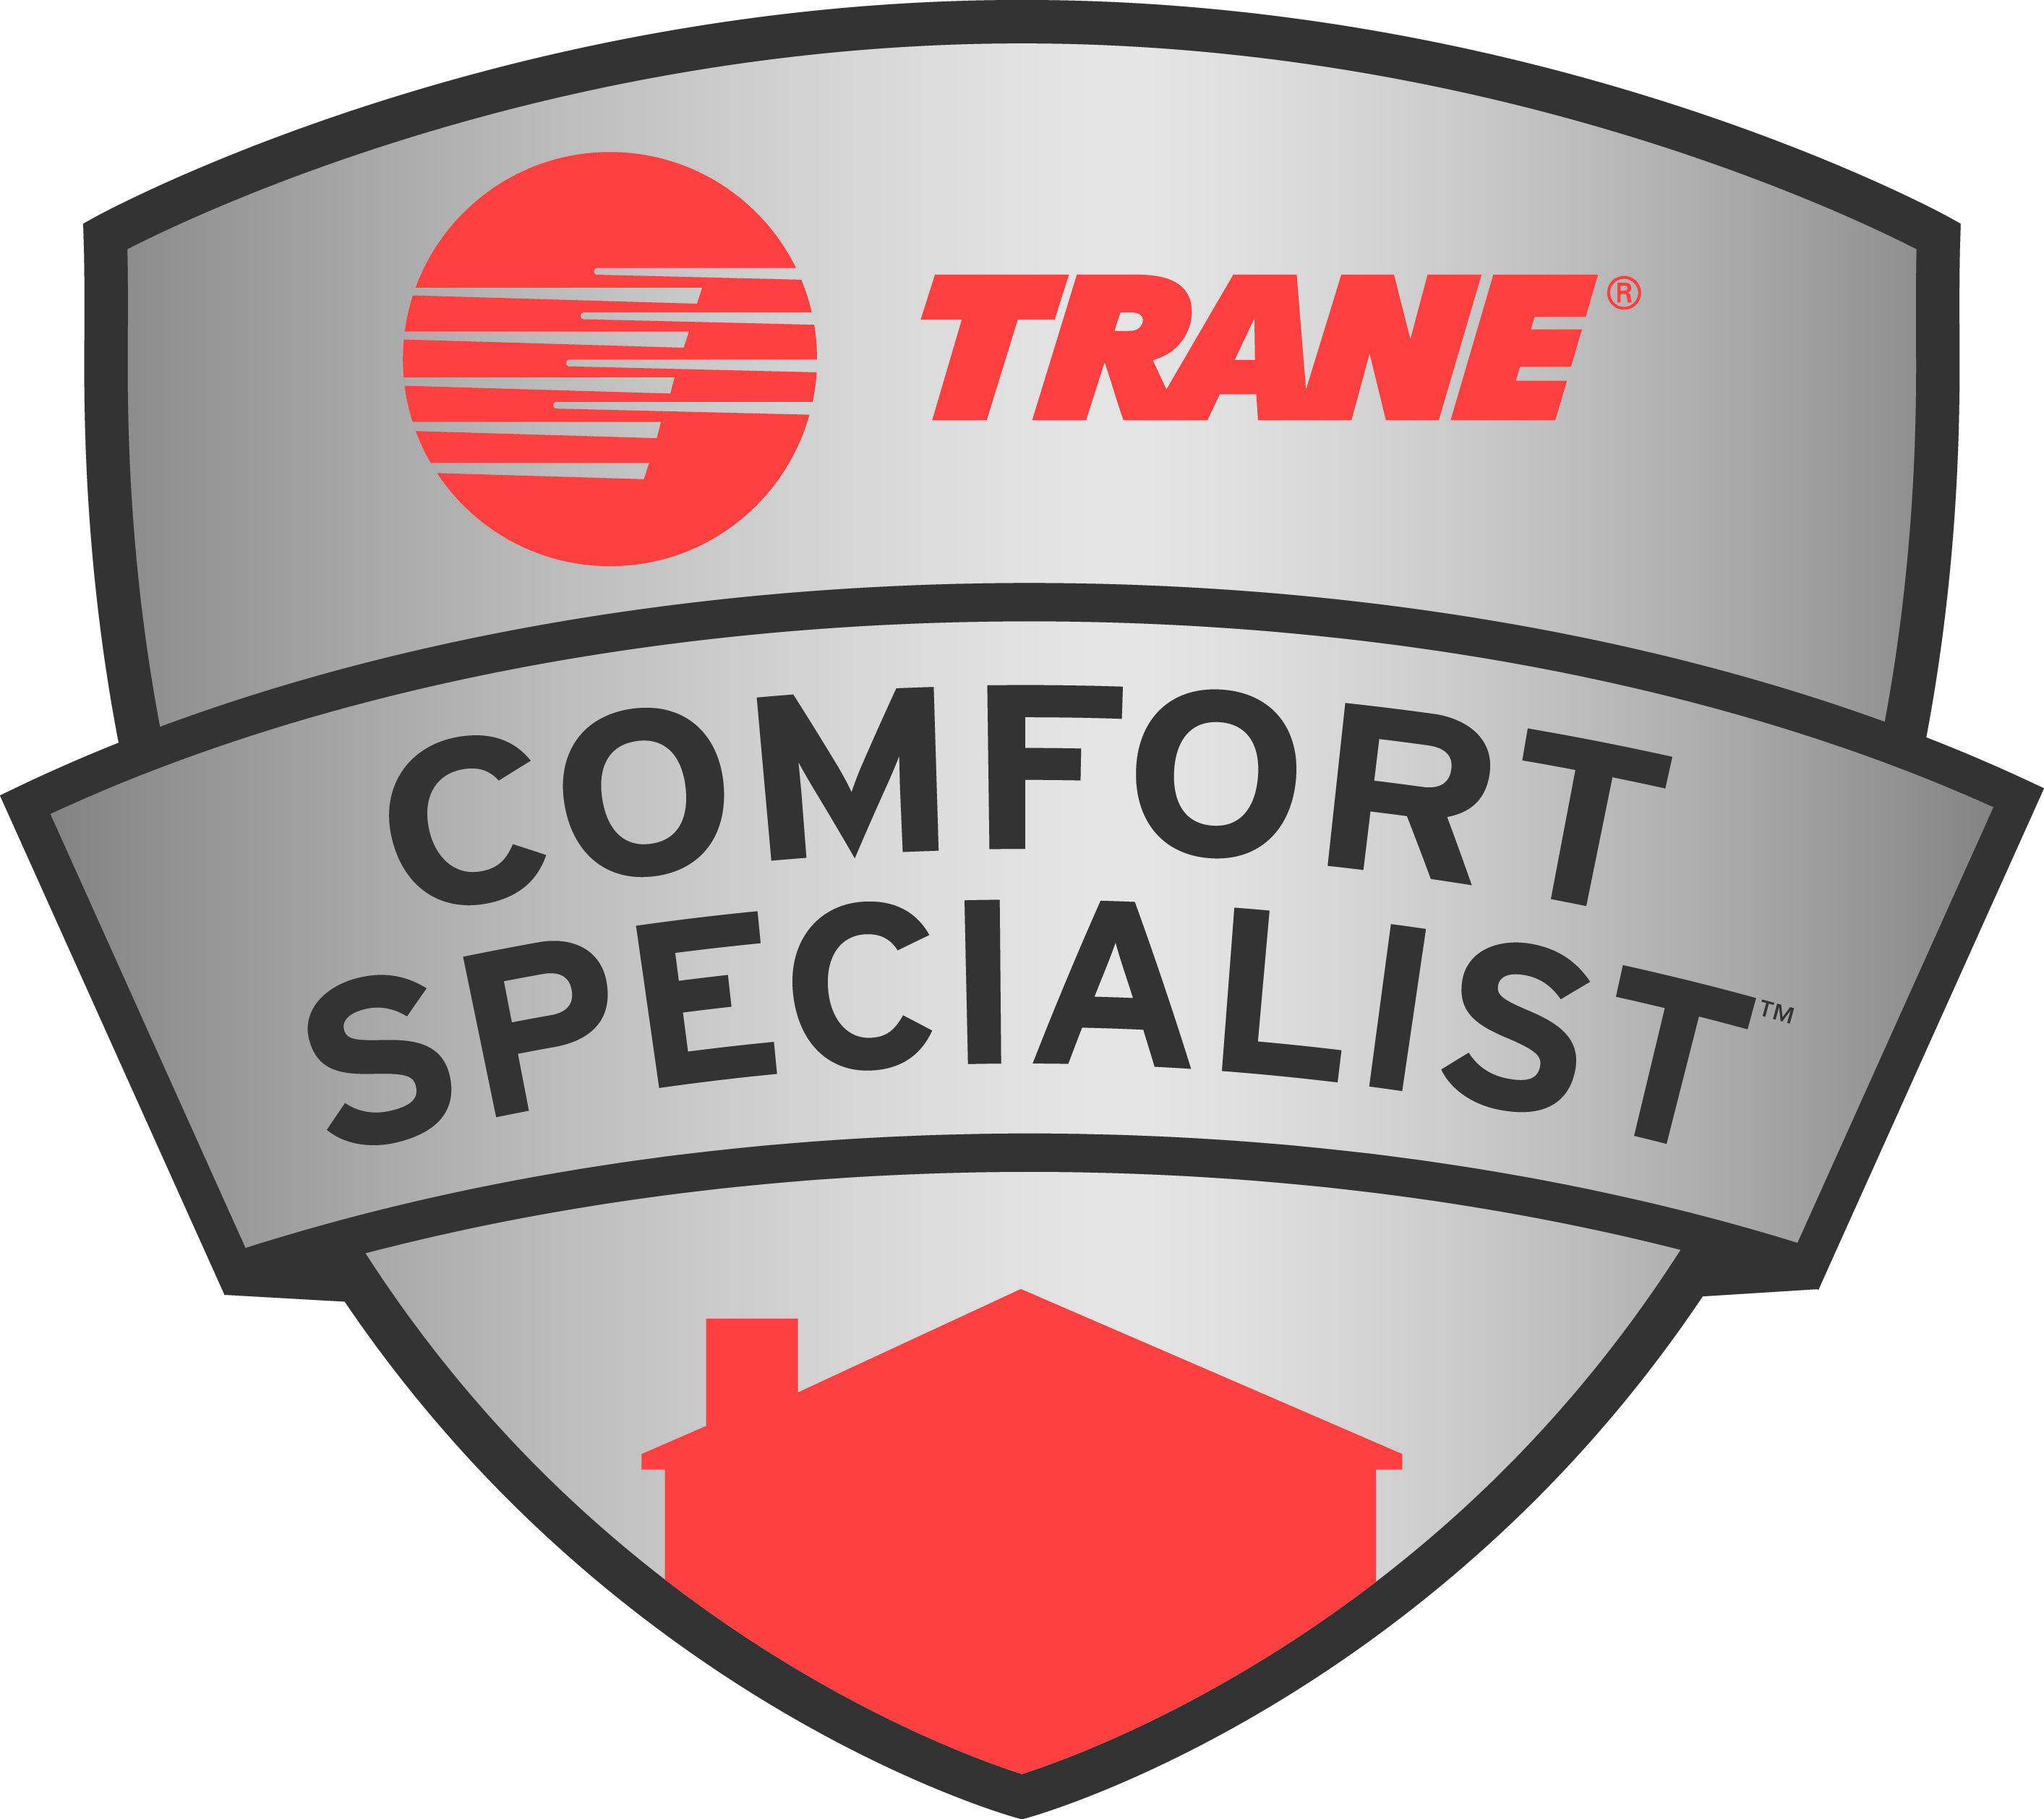 Andgar is a proud Trane specialist because we believe in